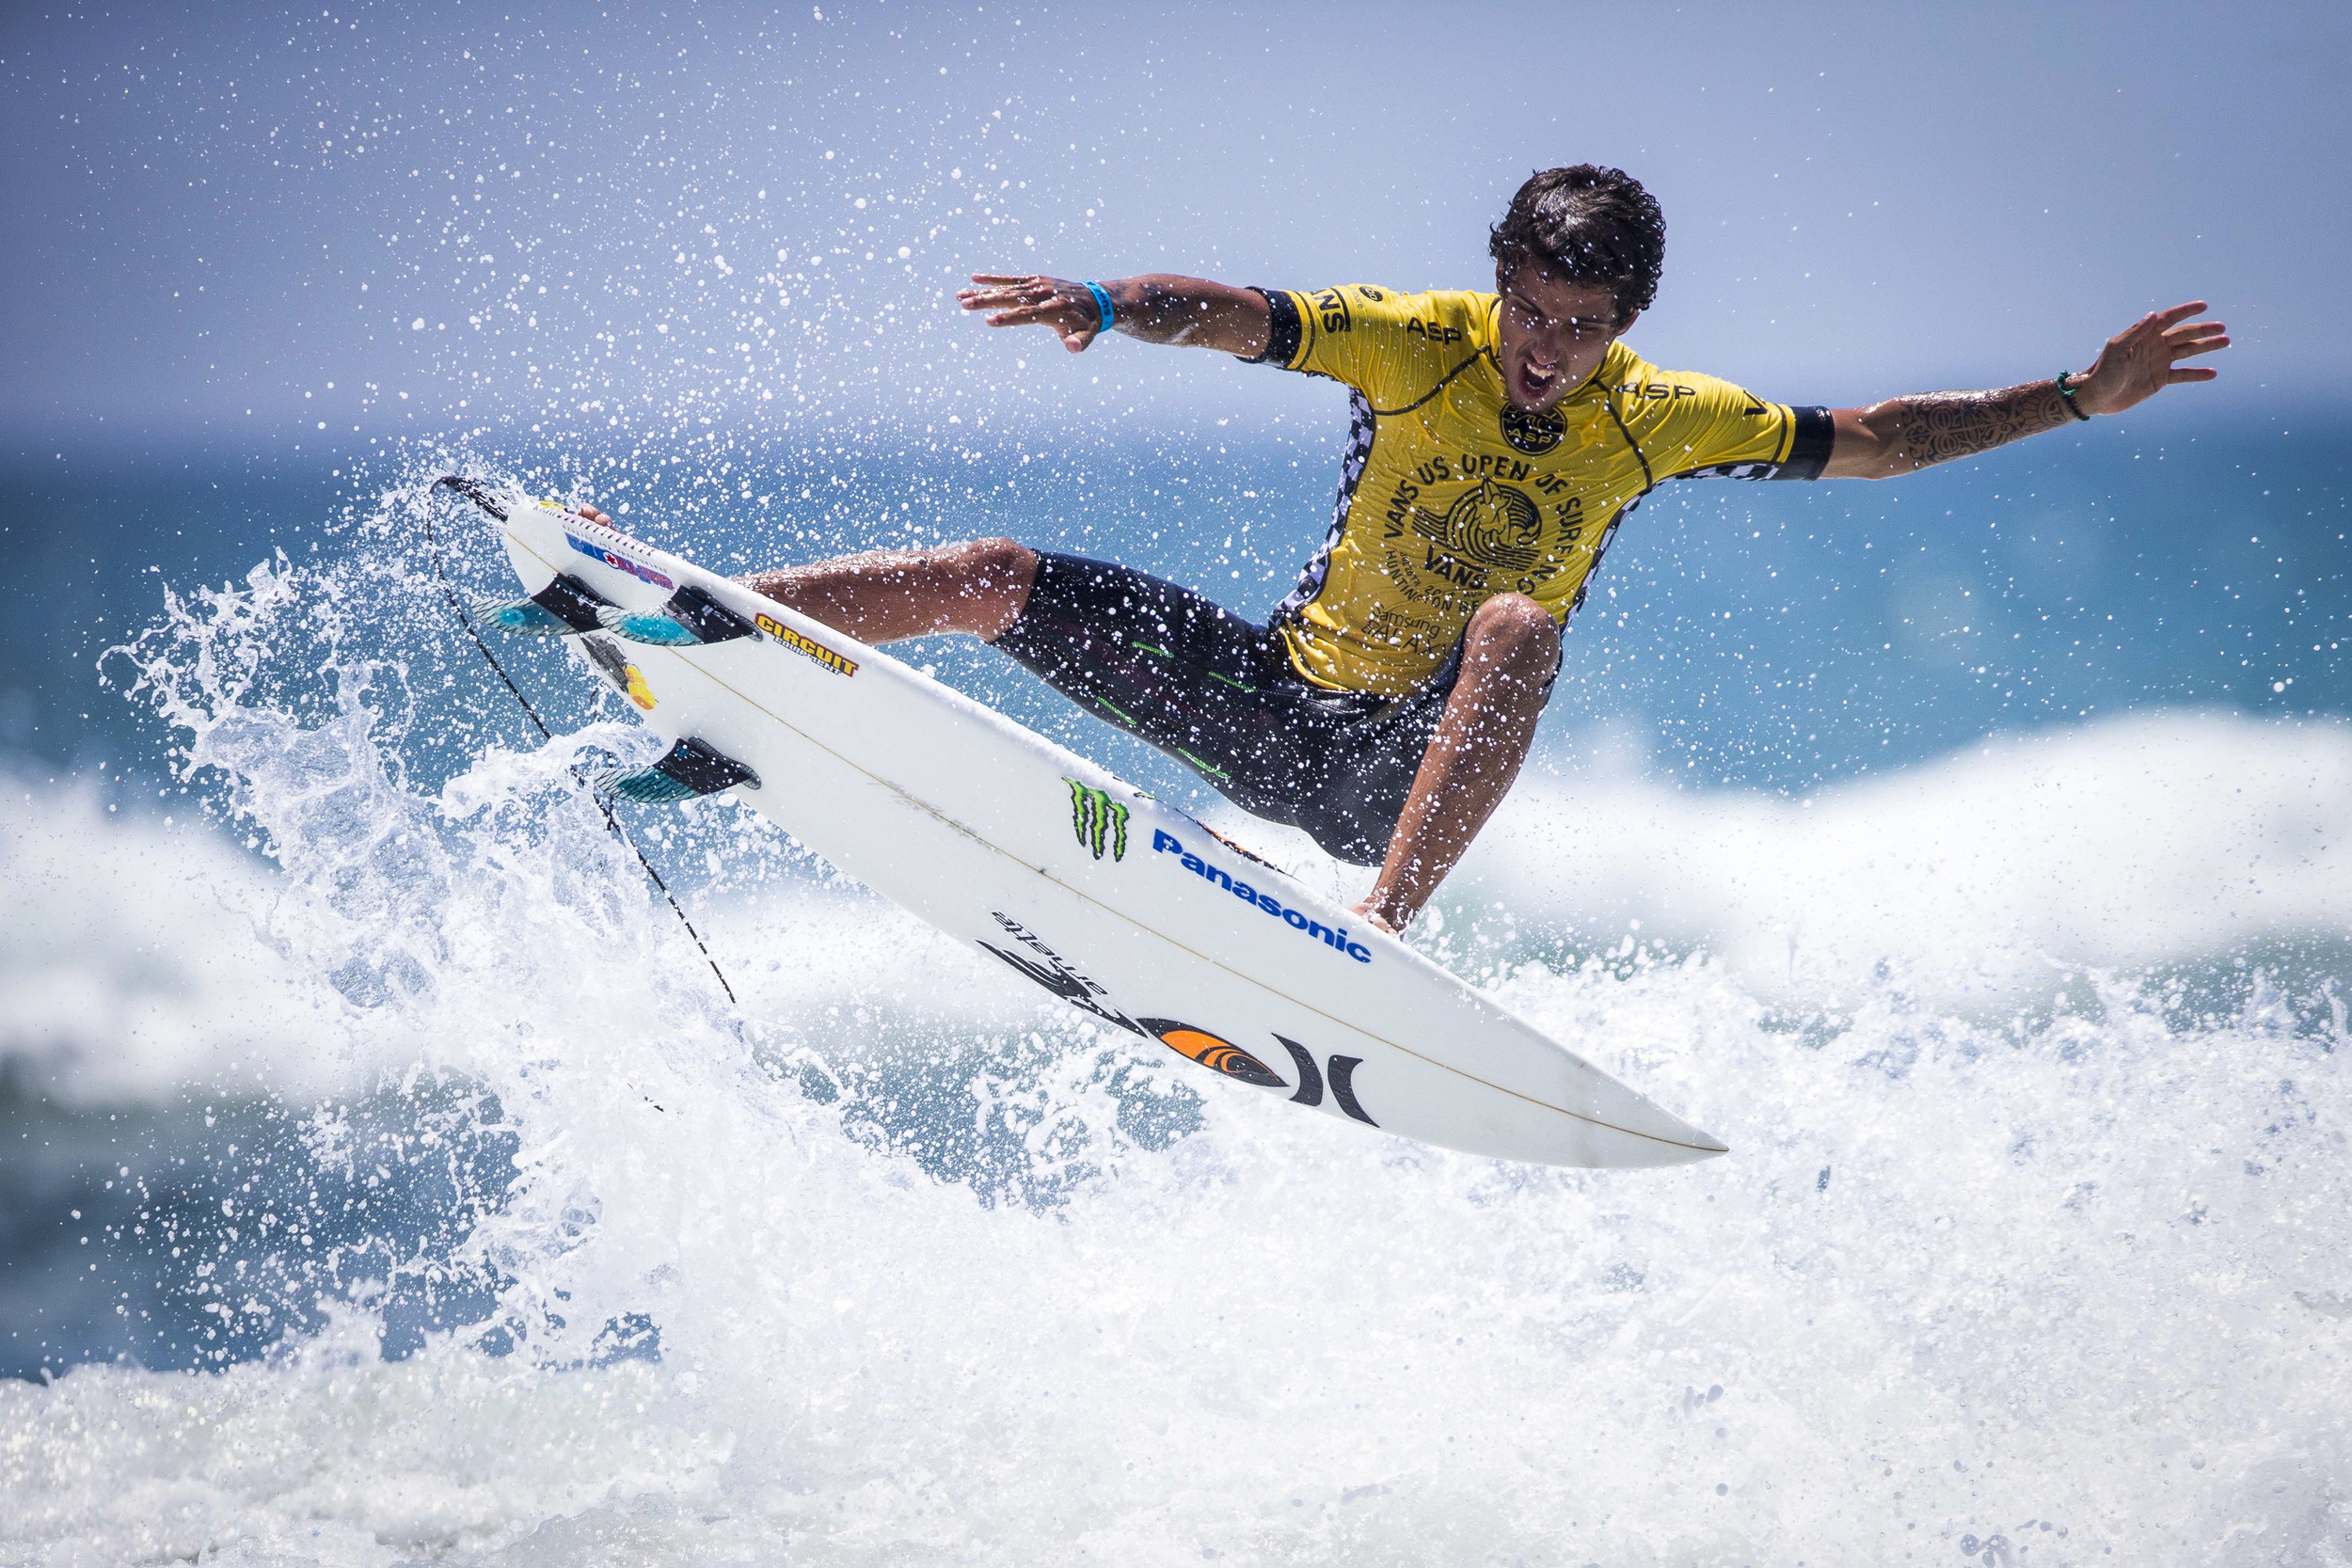 Filipe Toledo competes during the 6th heat of the 3rd round of the mens surfing main event during the 6th day of the Vans US Open at the Huntington Beach Pier in Huntington Beach on Thursday July 31, 2014.